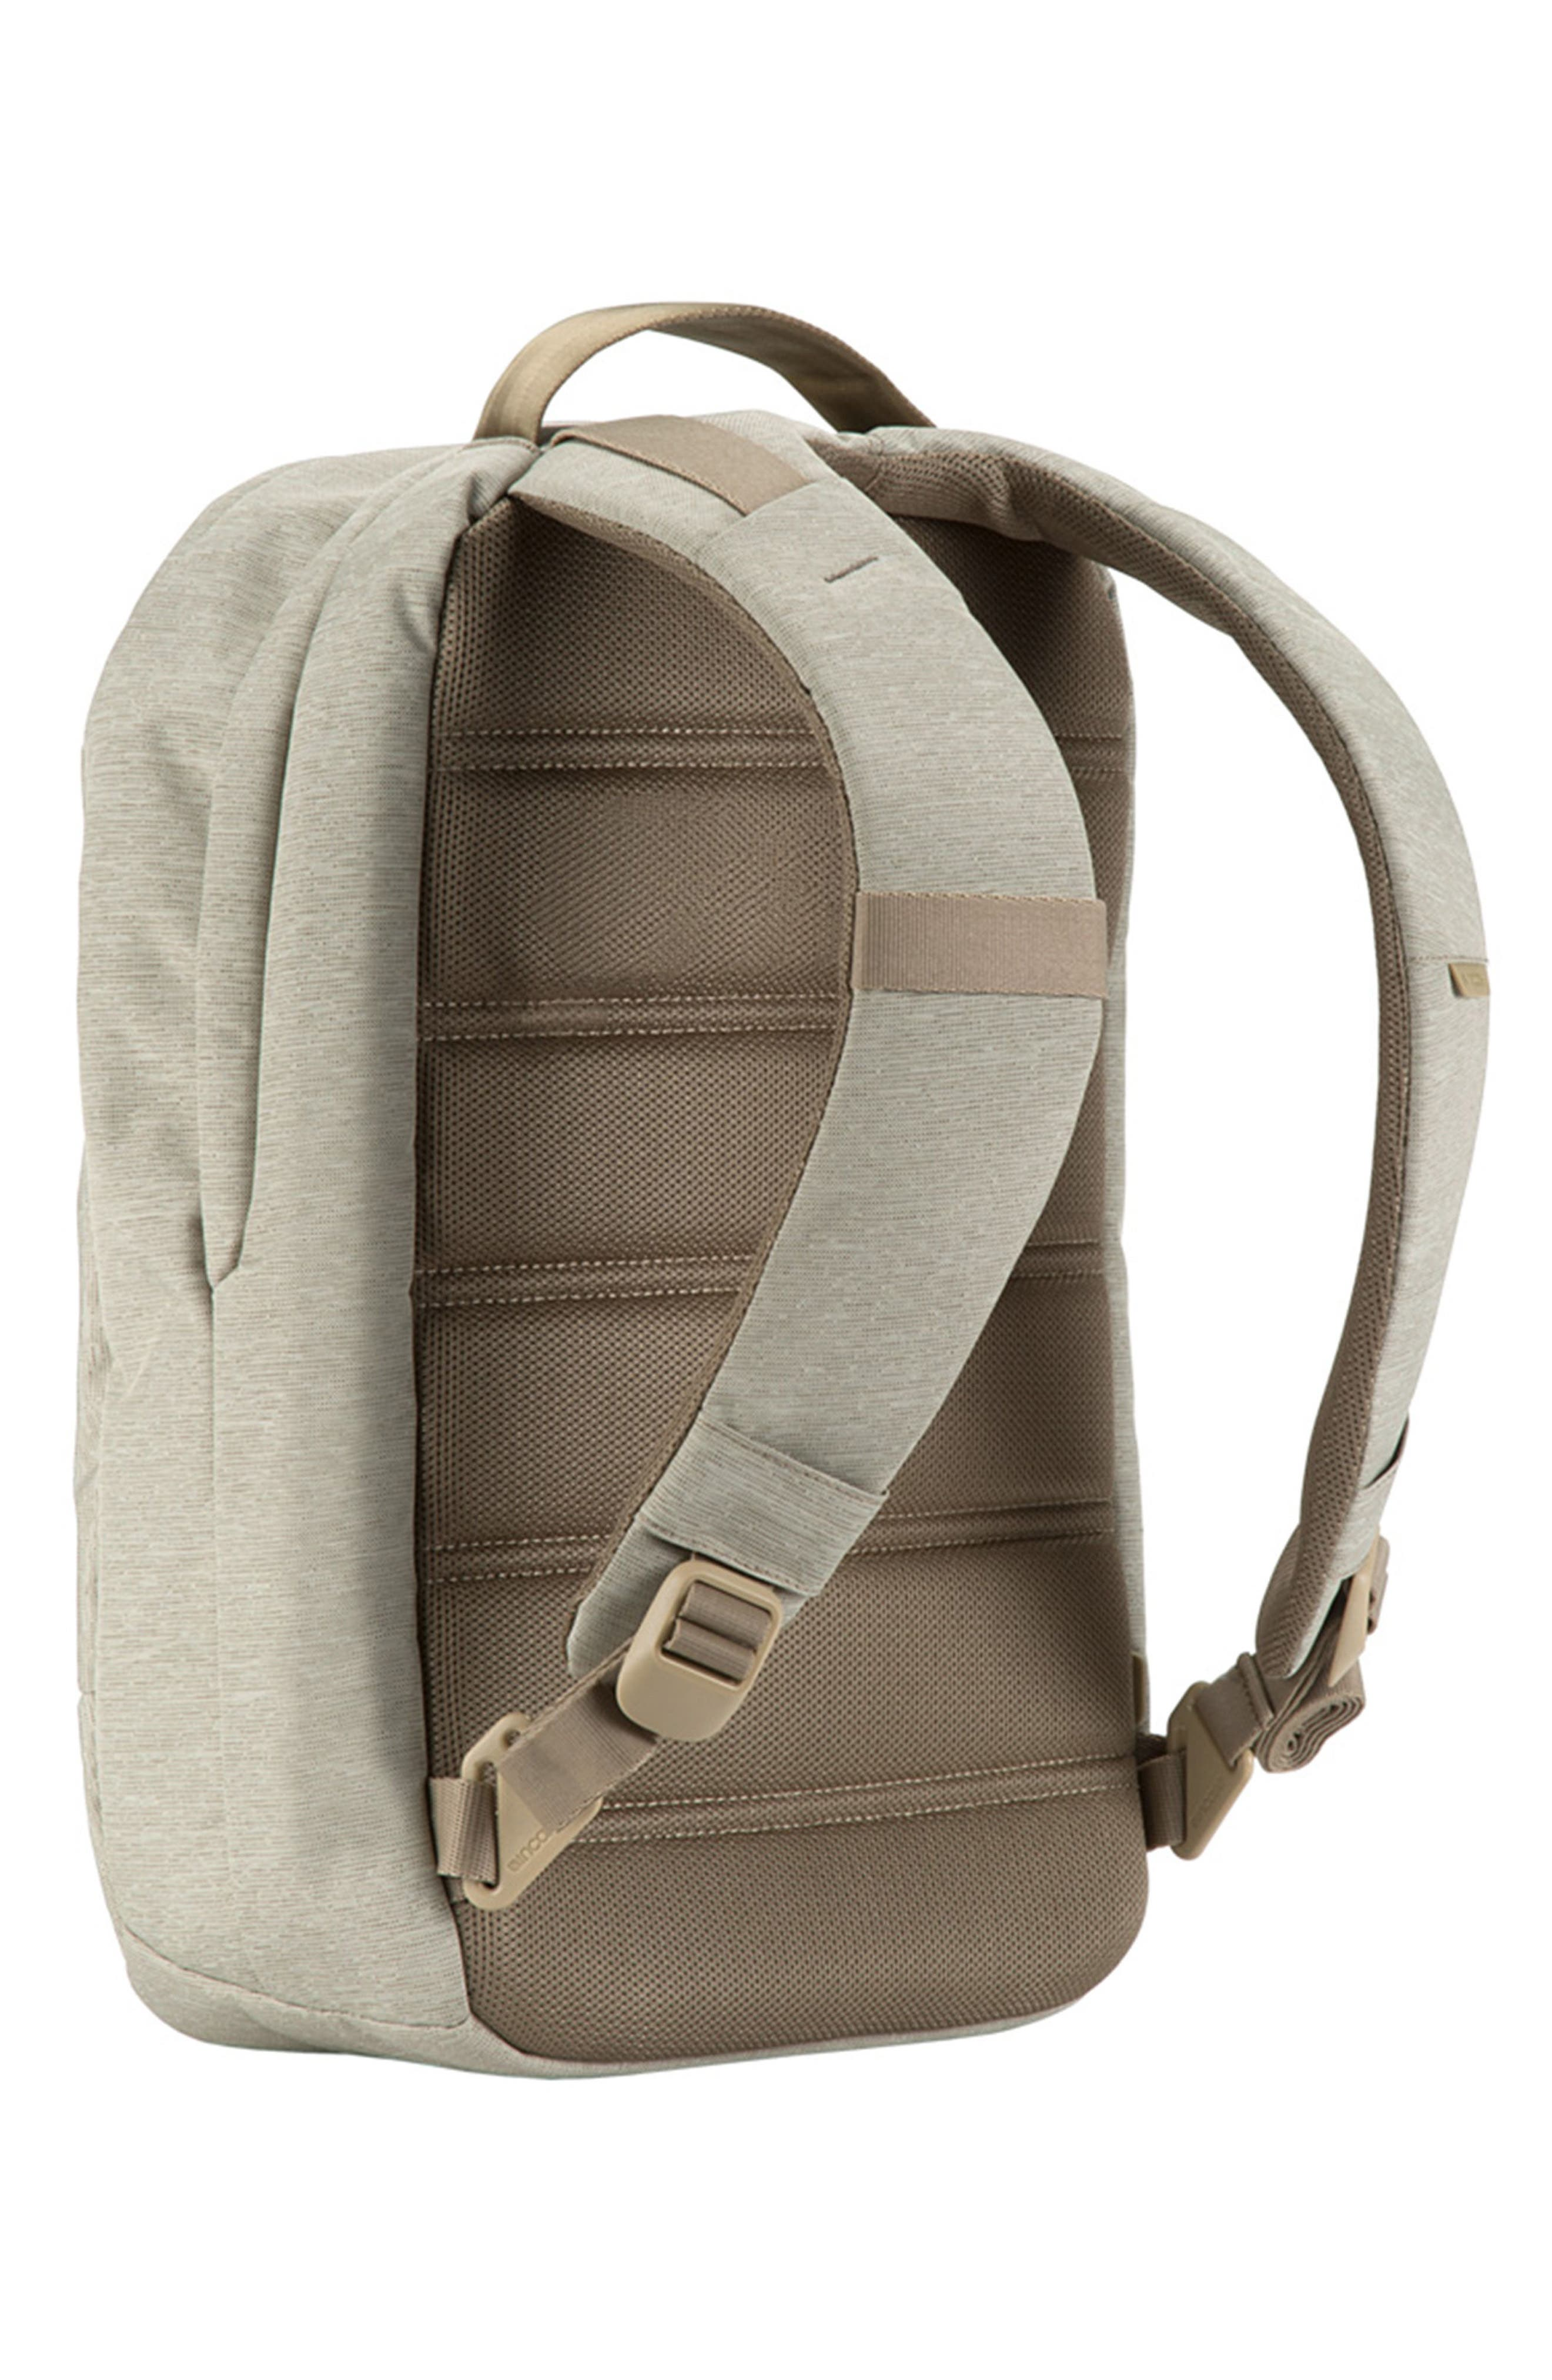 City Compact Backpack,                             Alternate thumbnail 2, color,                             HEATHER KHAKI